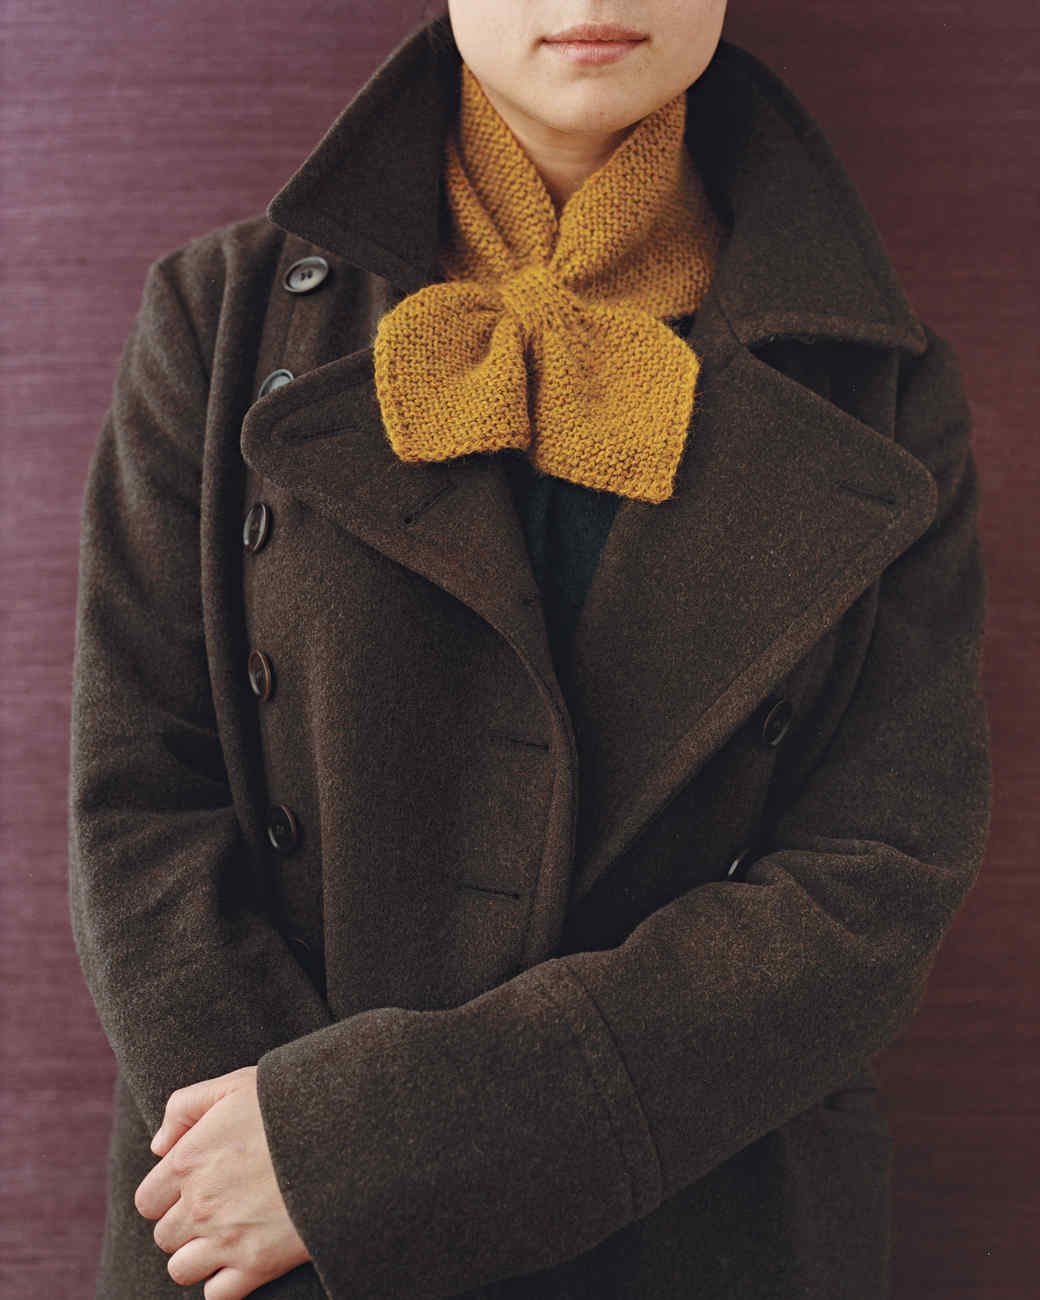 Knitting Patterns For Collar Scarf : 7 Knitted Scarves to Feel Cozy and Comfortable Martha Stewart